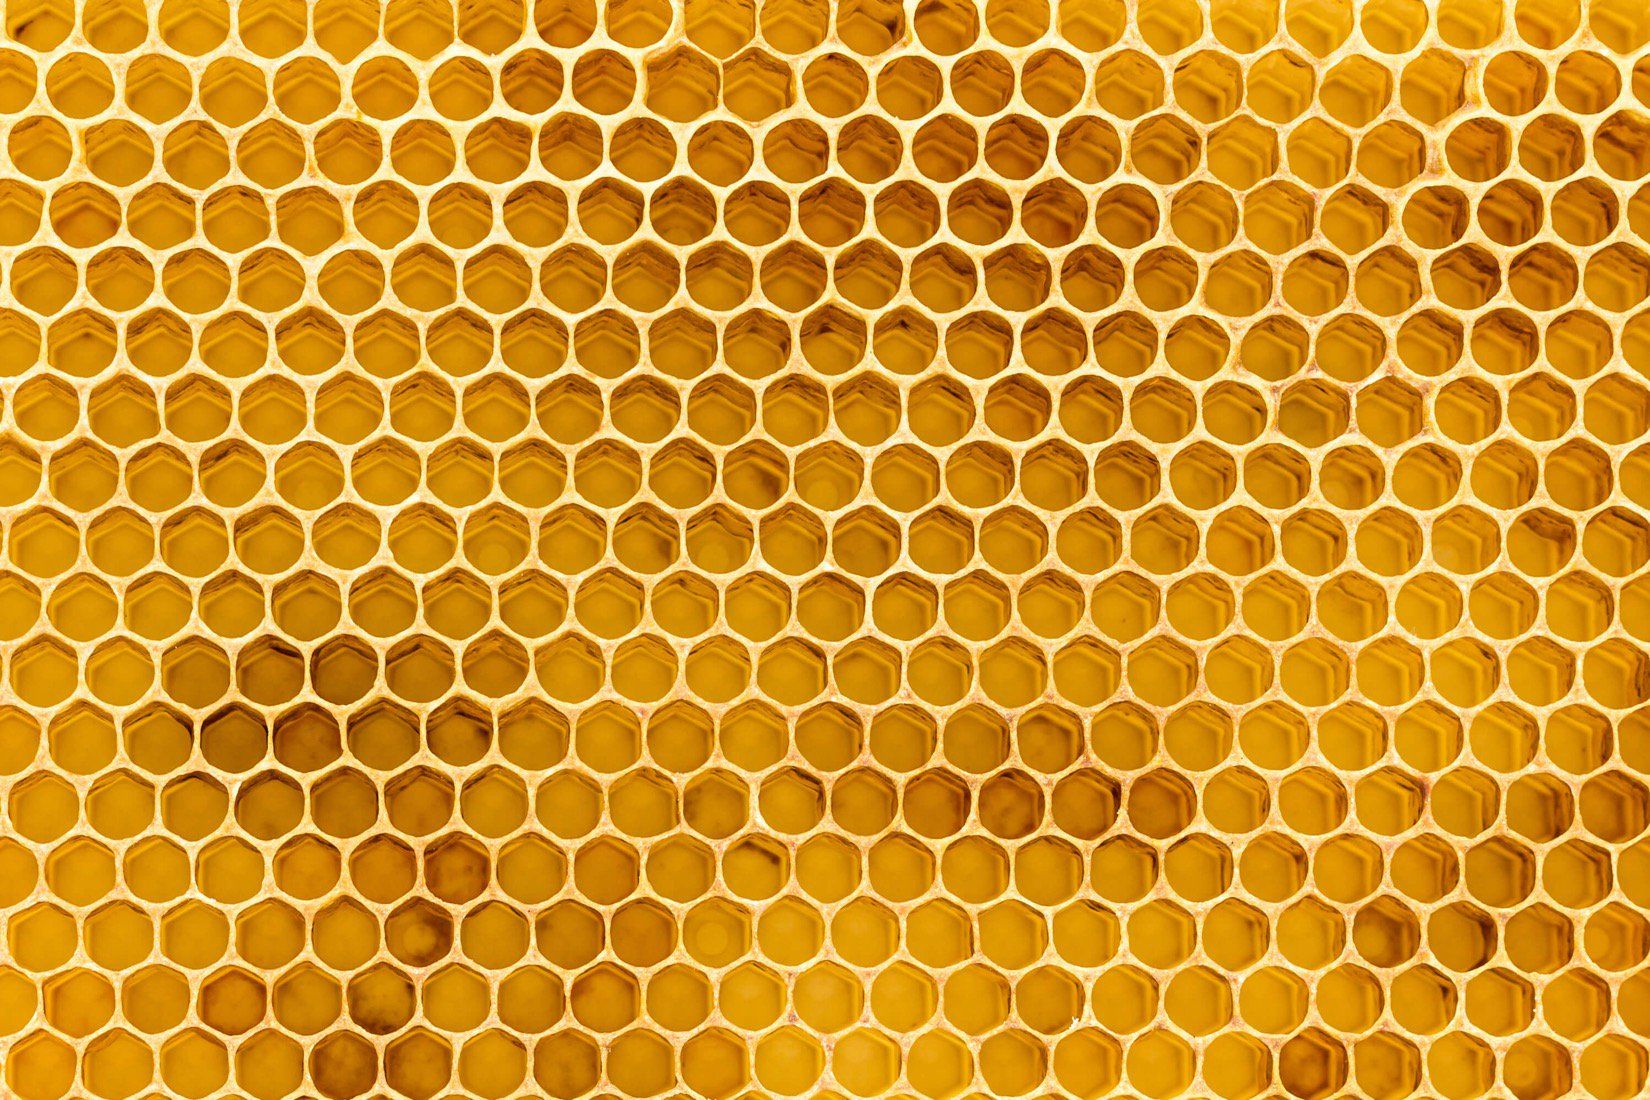 With Its Warm Colors And Simple Arrangement Our Honeycomb Texture Wallpaper Mural Is Both Interesting And Versat Honeycomb Wallpaper Honeycomb Mural Wallpaper